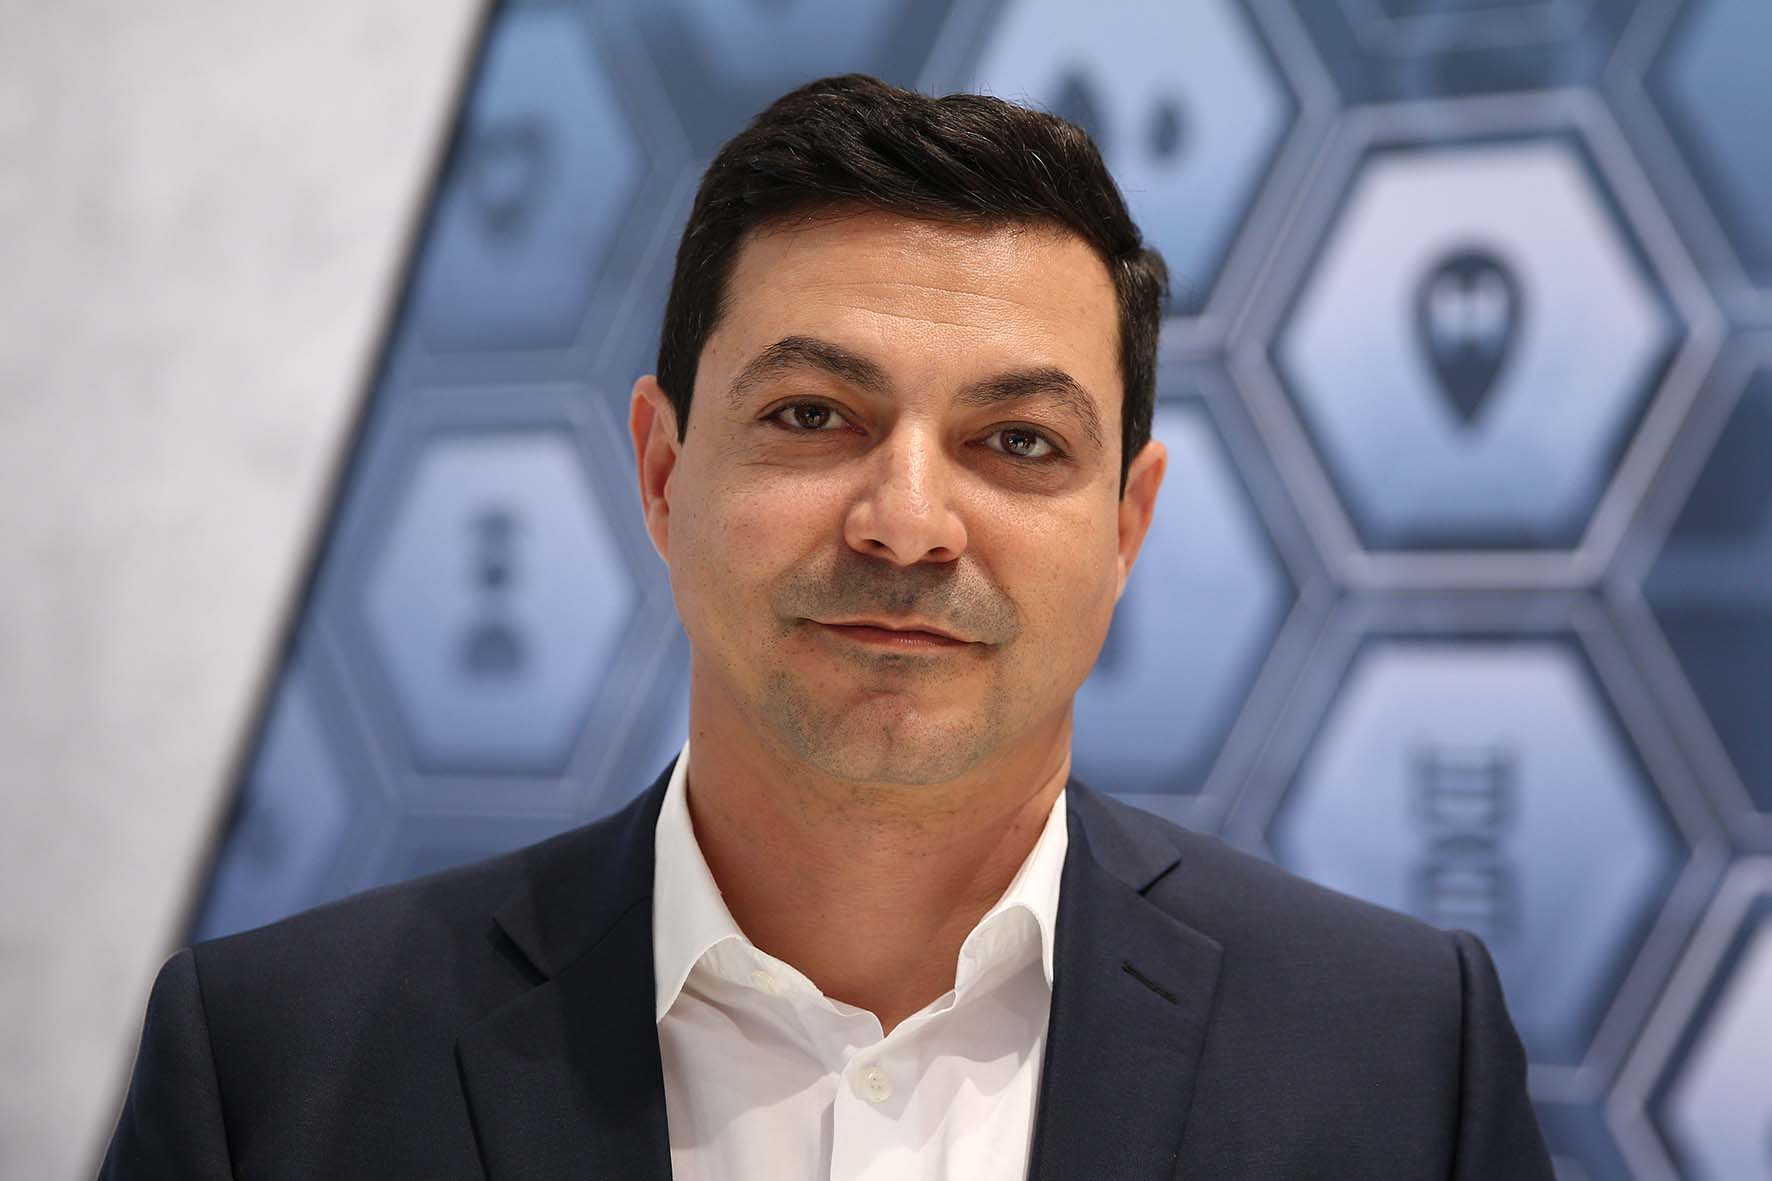 Michael Ouissi